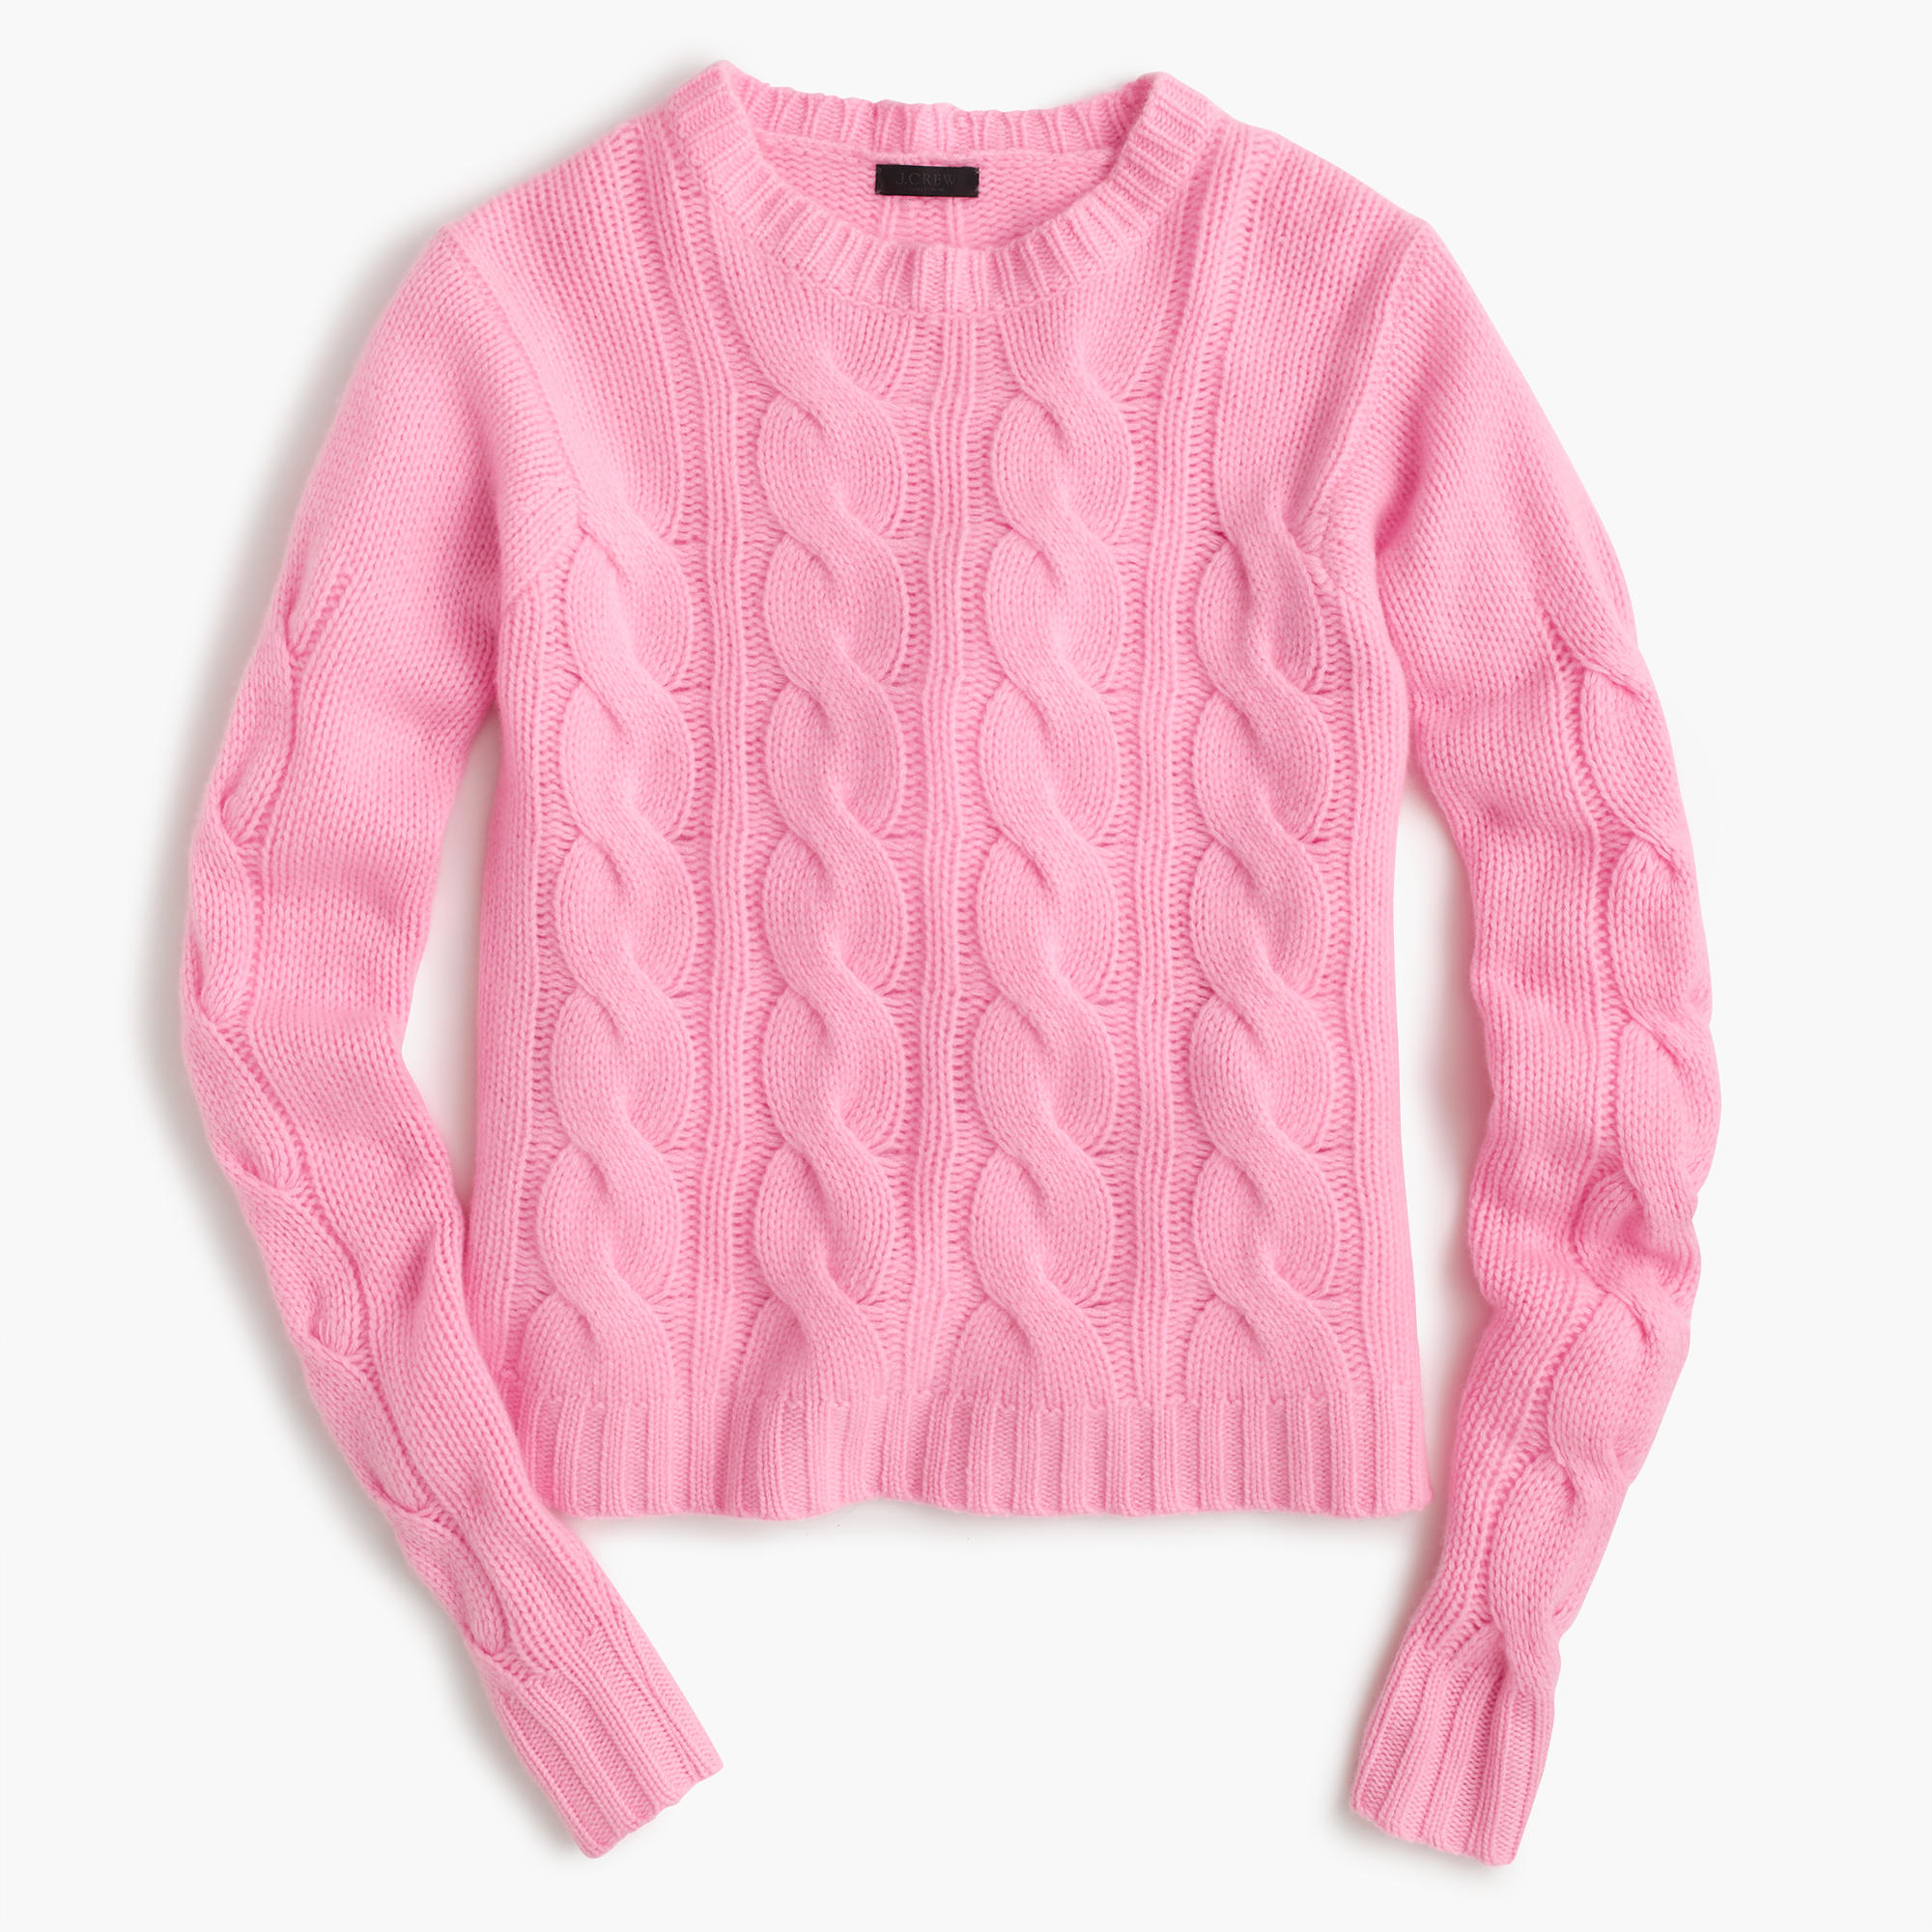 275aaebed57f Lyst - J.Crew Italian Cashmere Cable Sweater in Pink